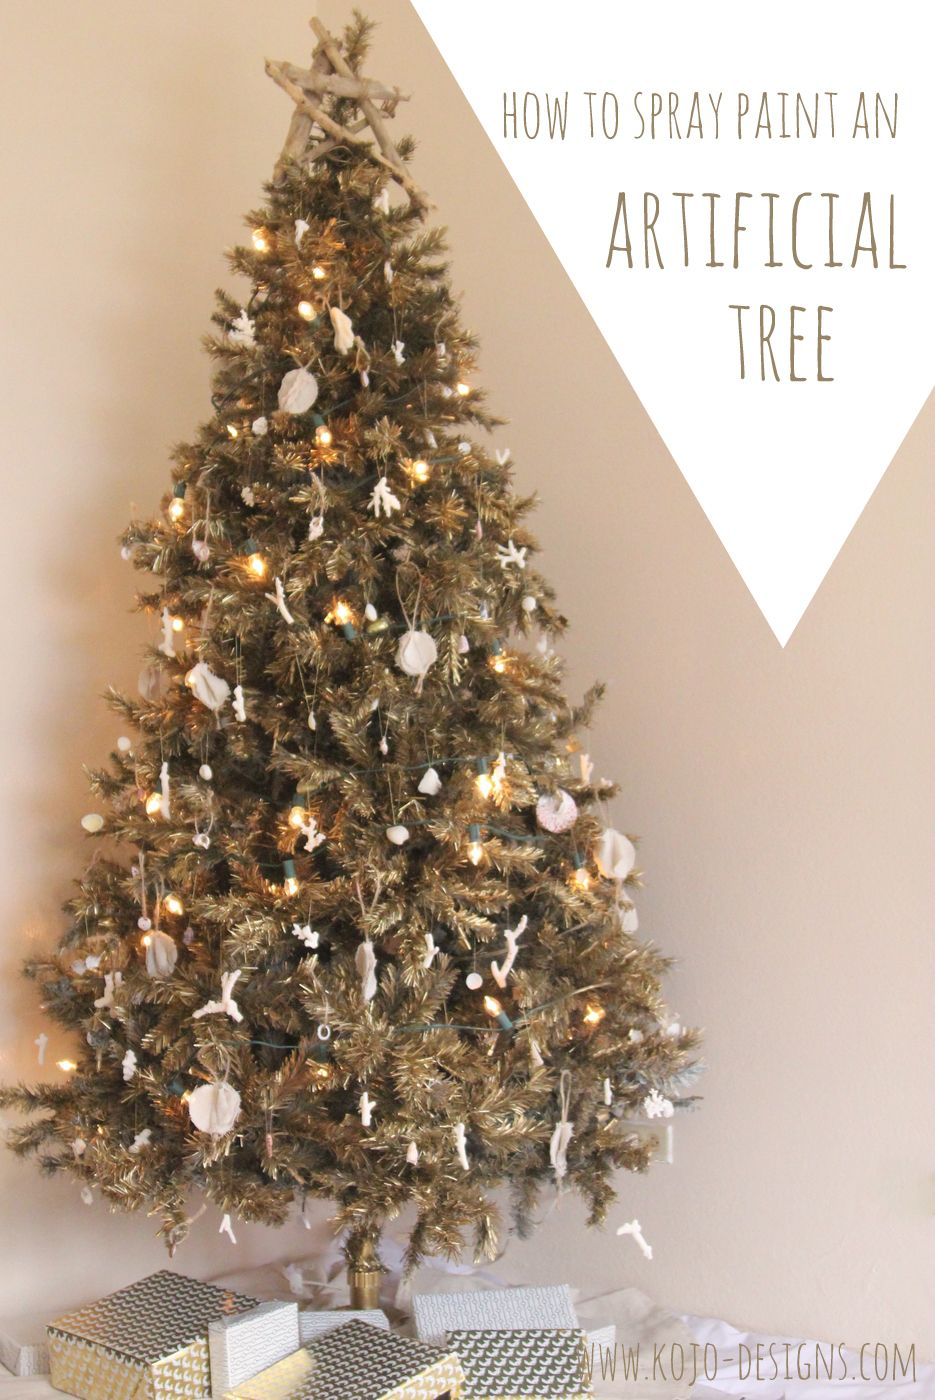 How To Spray Paint An Artificial Christmas Tree Christmas Tree Painting Fake Christmas Trees Faux Christmas Trees